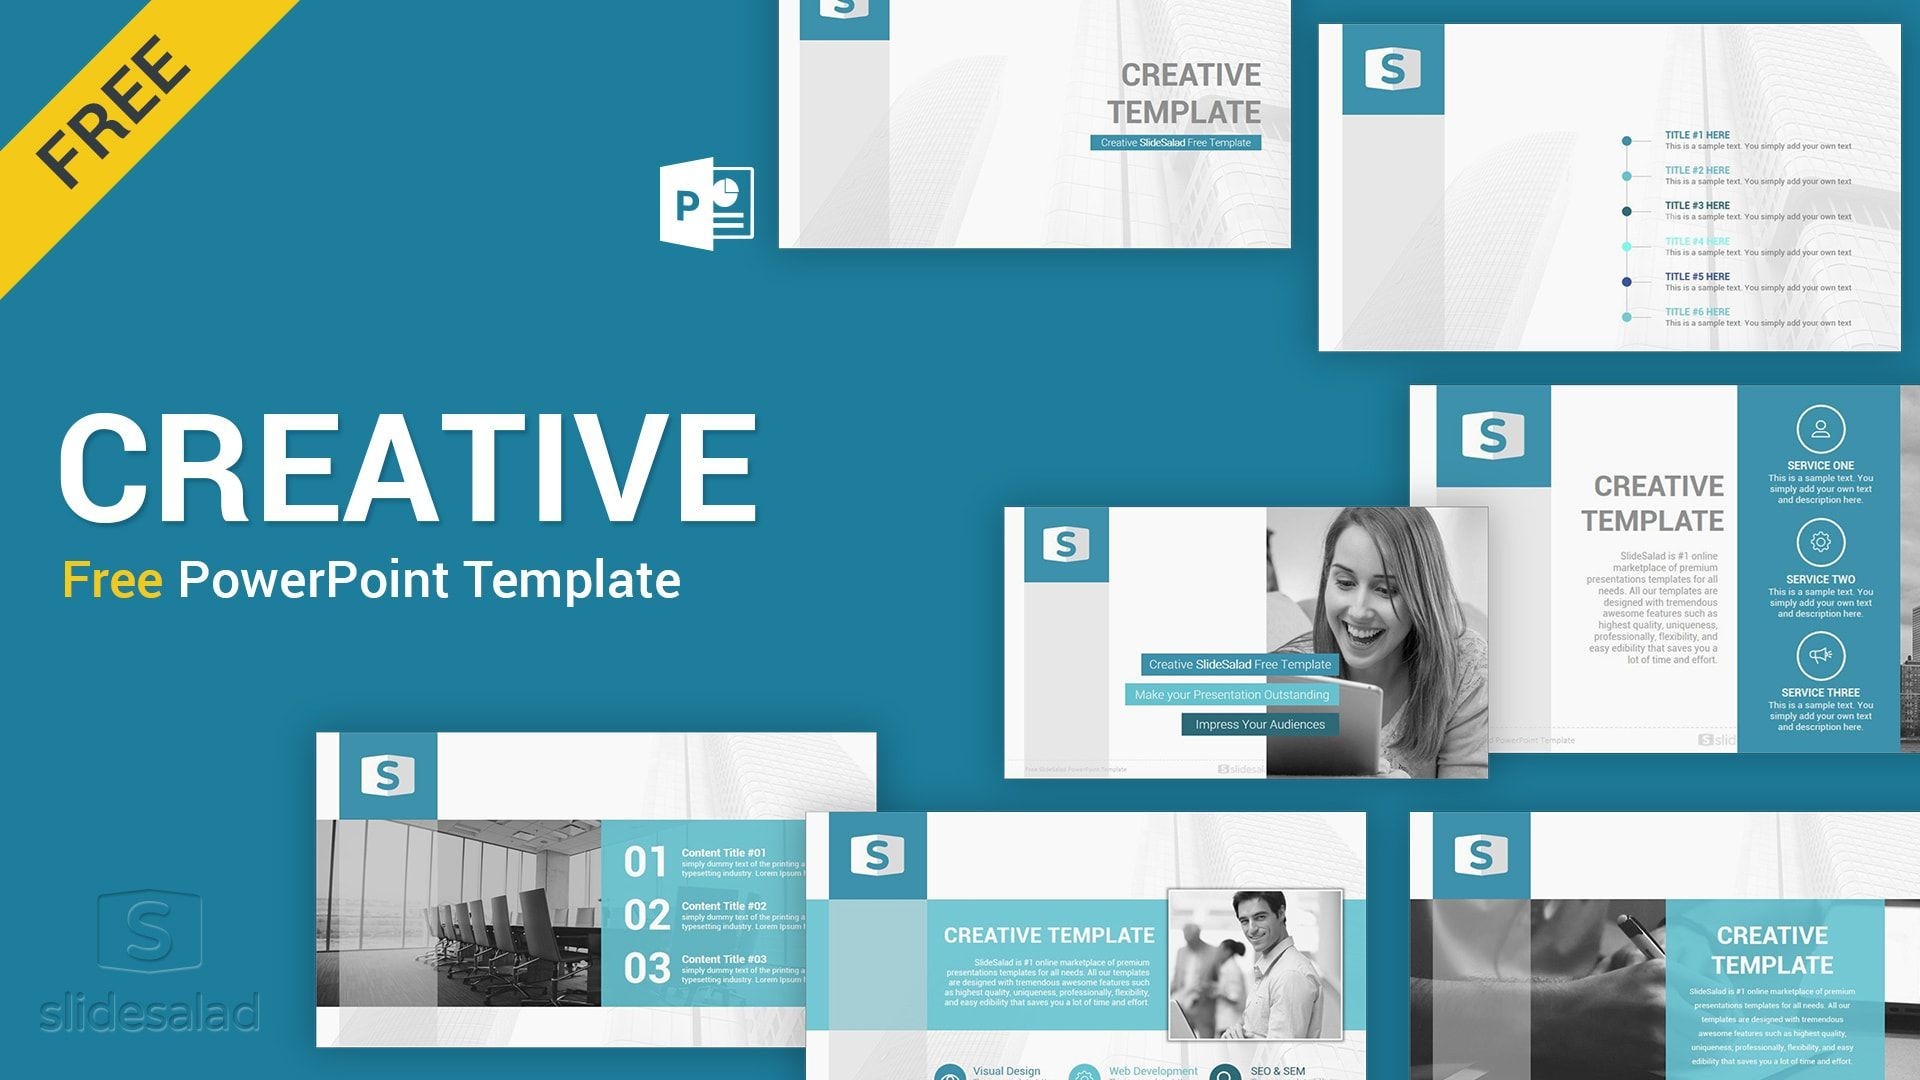 003 Awesome Download Free Powerpoint Template High Def  Templates Professional 2018 Ppt For Busines Presentation Education /1920